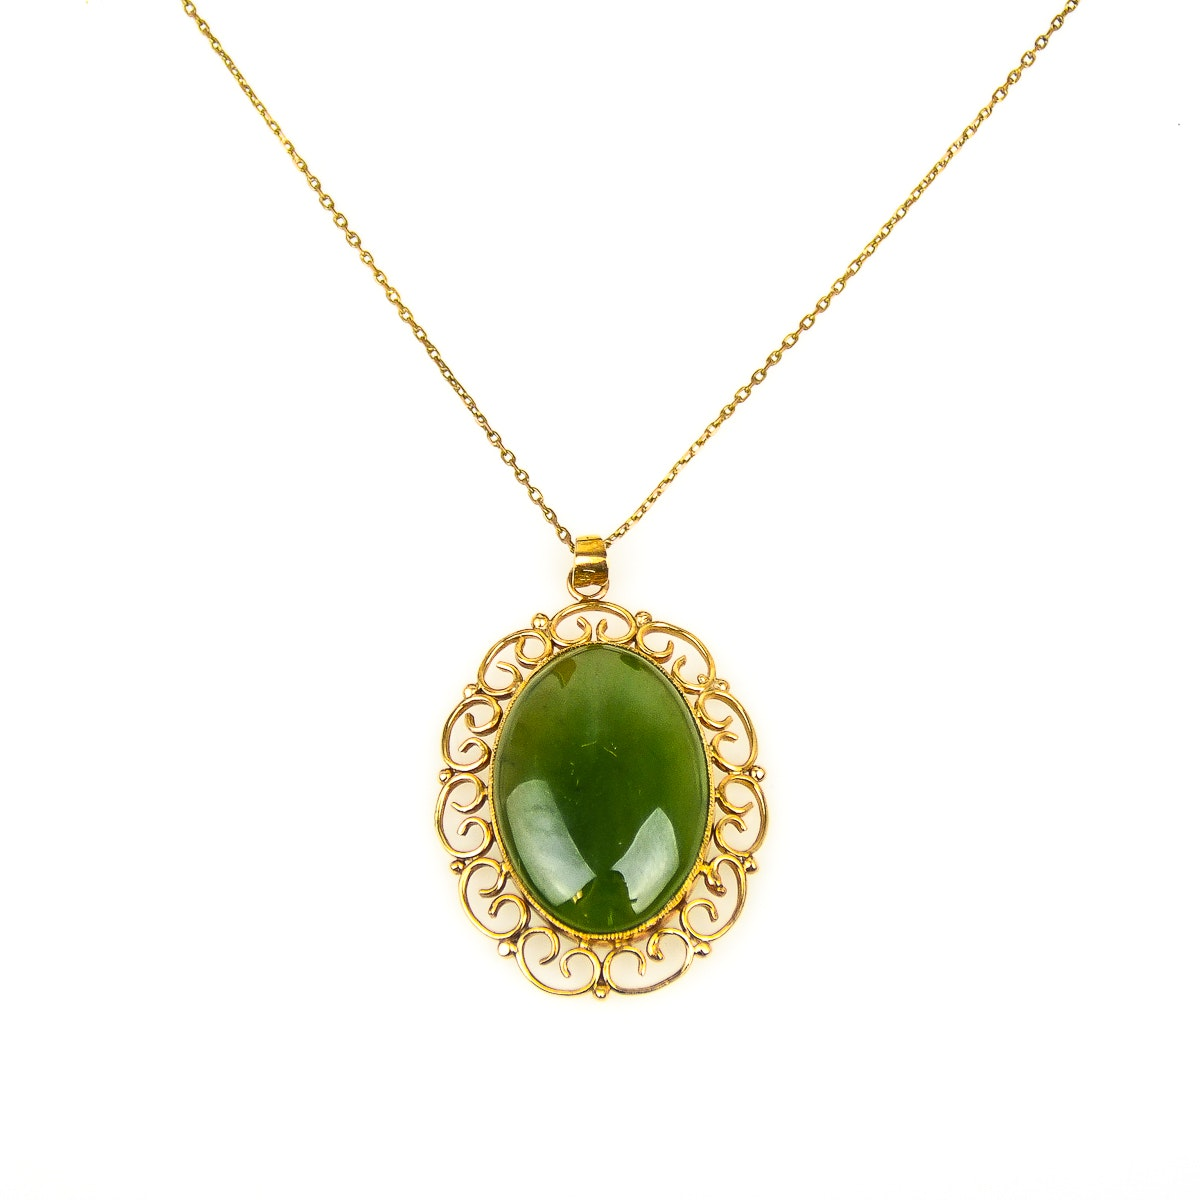 14K Yellow Gold and Nephrite Jade Pendant Necklace